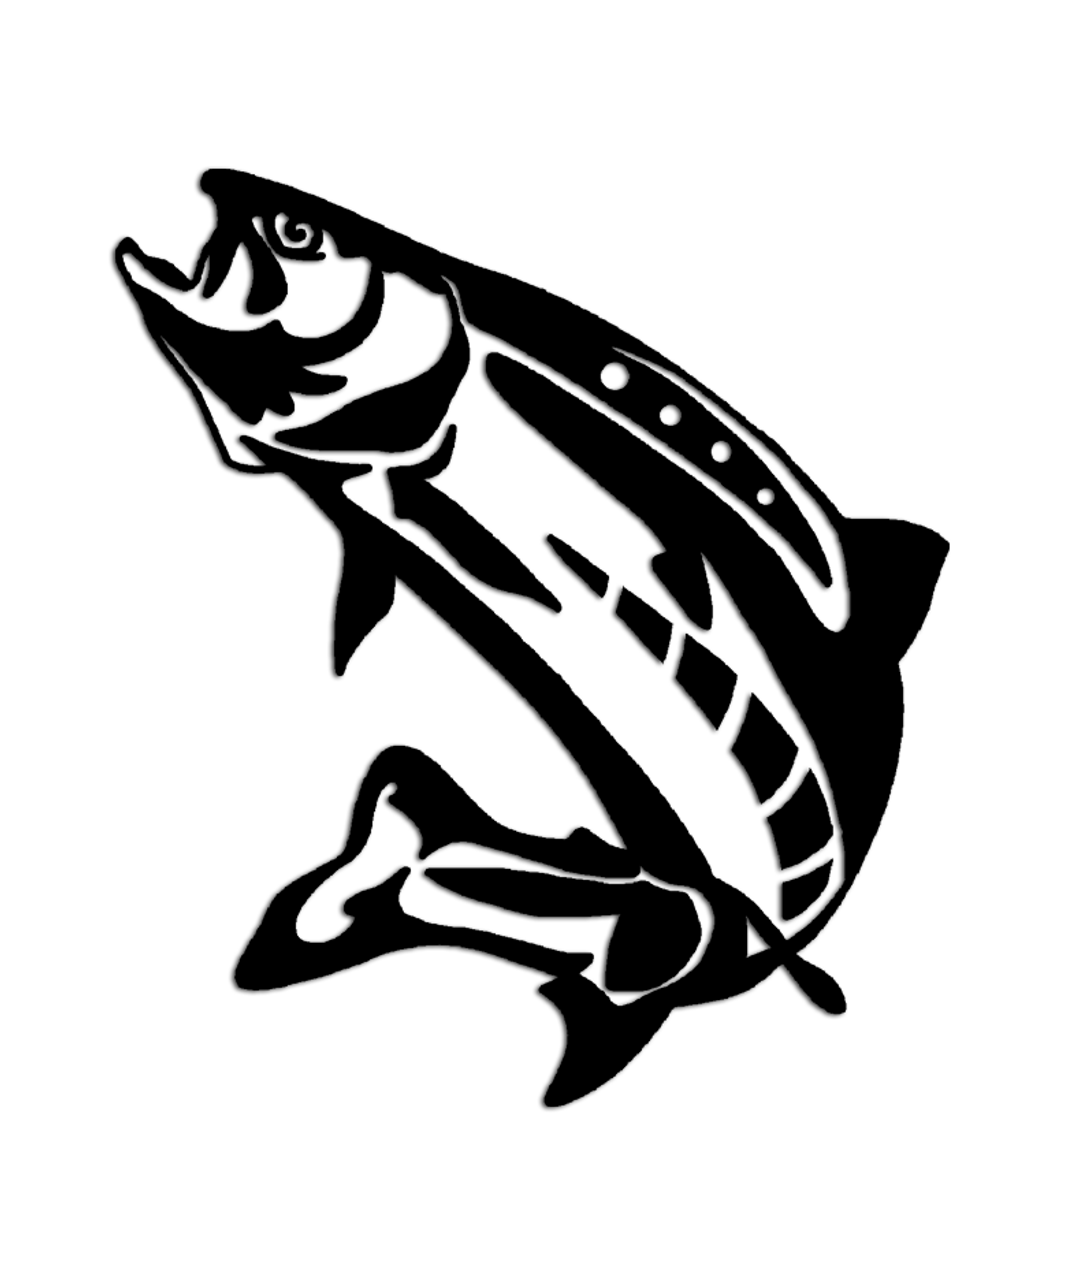 Lake trout fishing sticker aftershock decals for Free fishing stickers